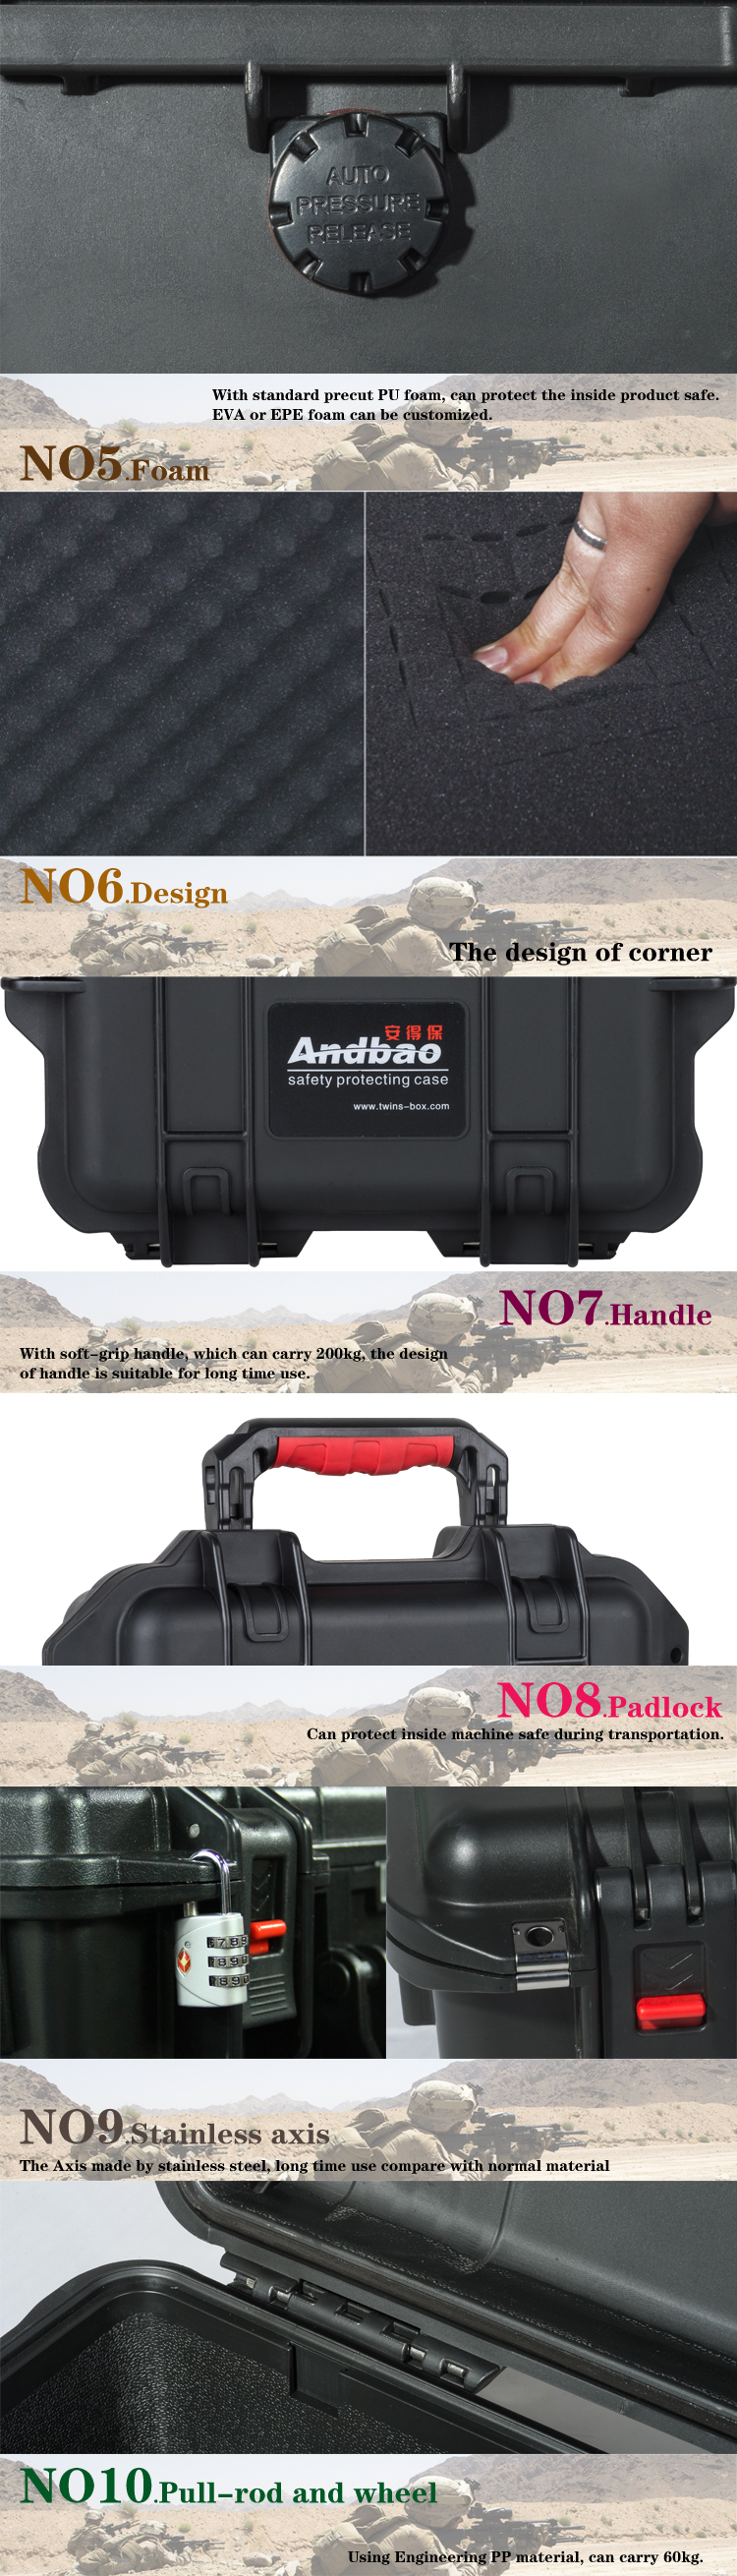 Hard instrument carrying case